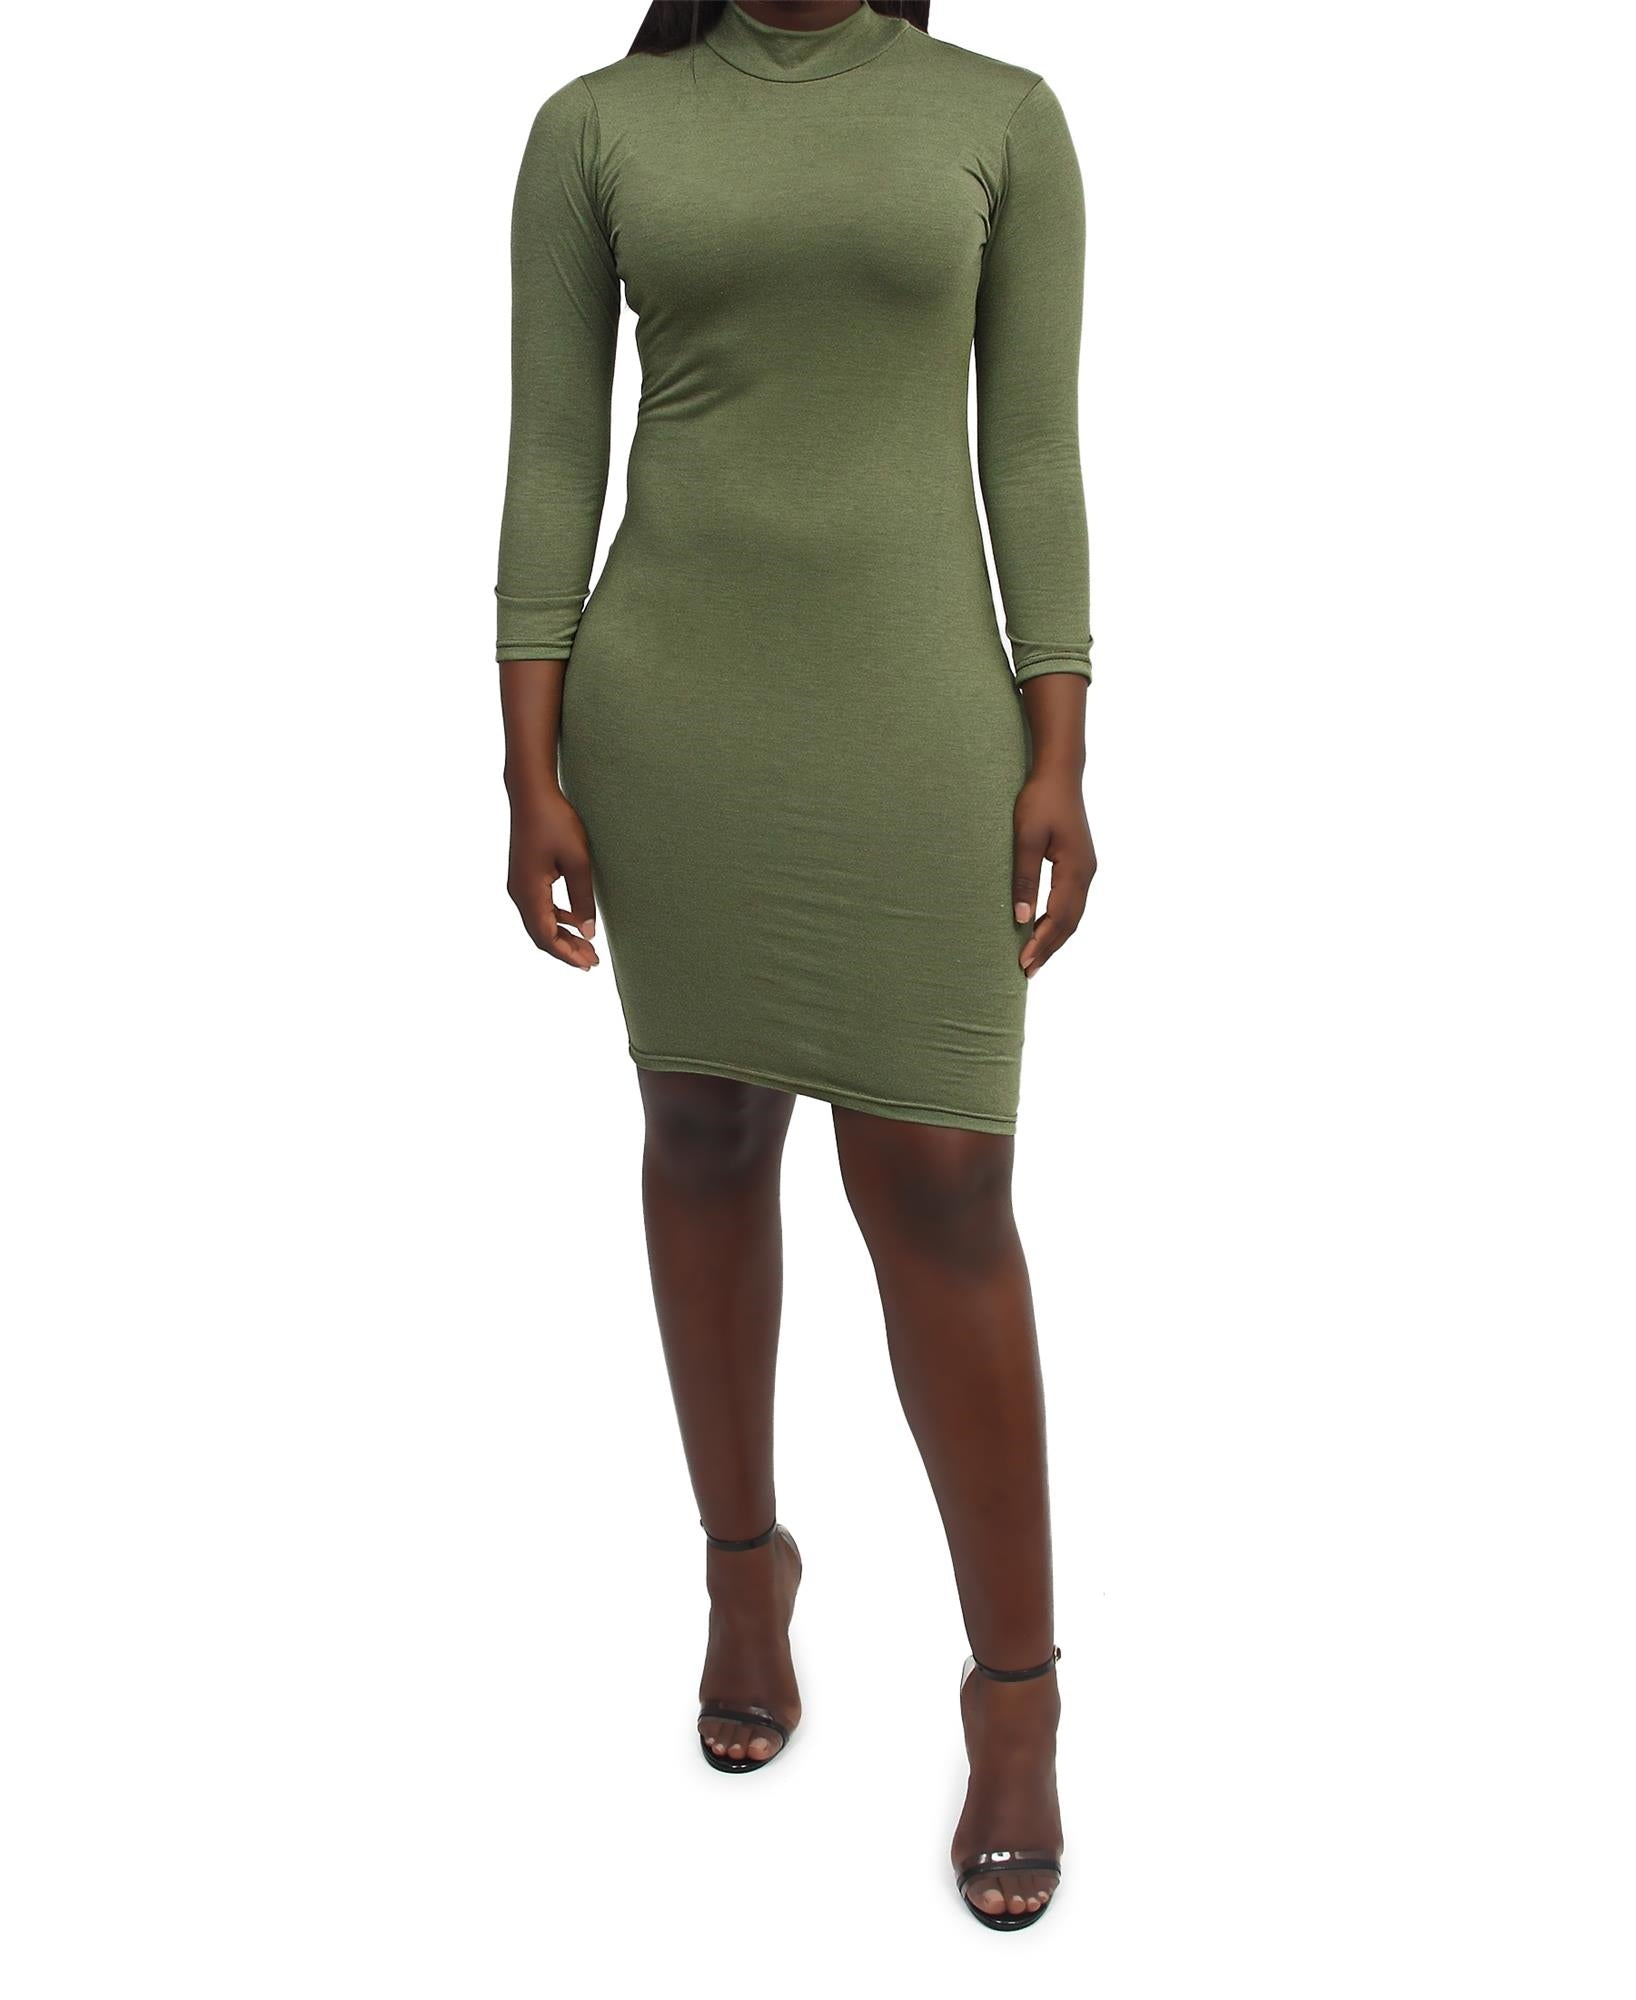 Bodycon Dress - Green